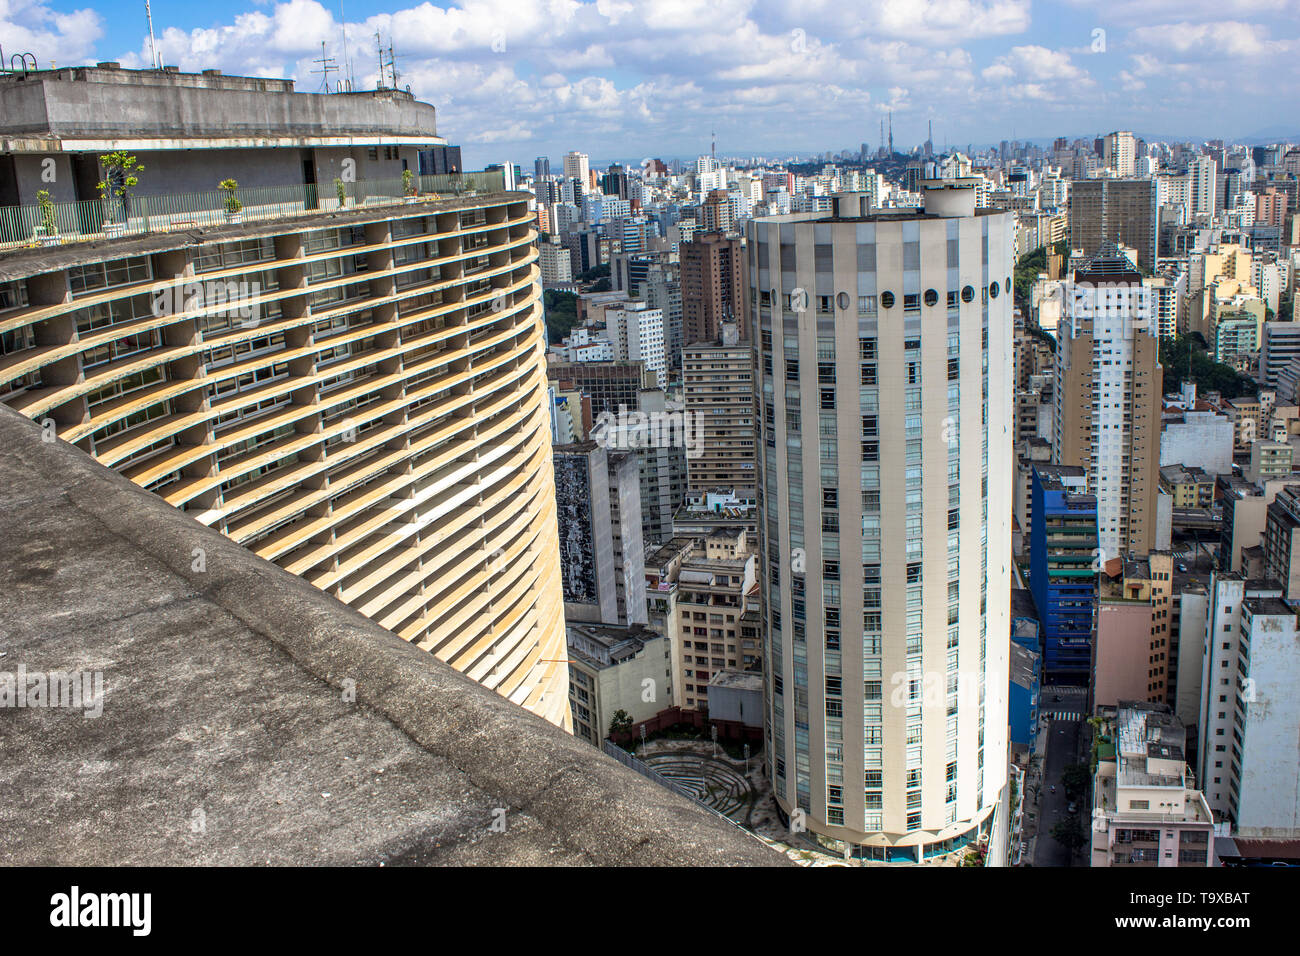 Sao Paulo, SP, Brazil, April 17, 2013. Panoramic view of the city from the terrace of the Copan Building, in the center of Sao Paulo, SP. Stock Photo